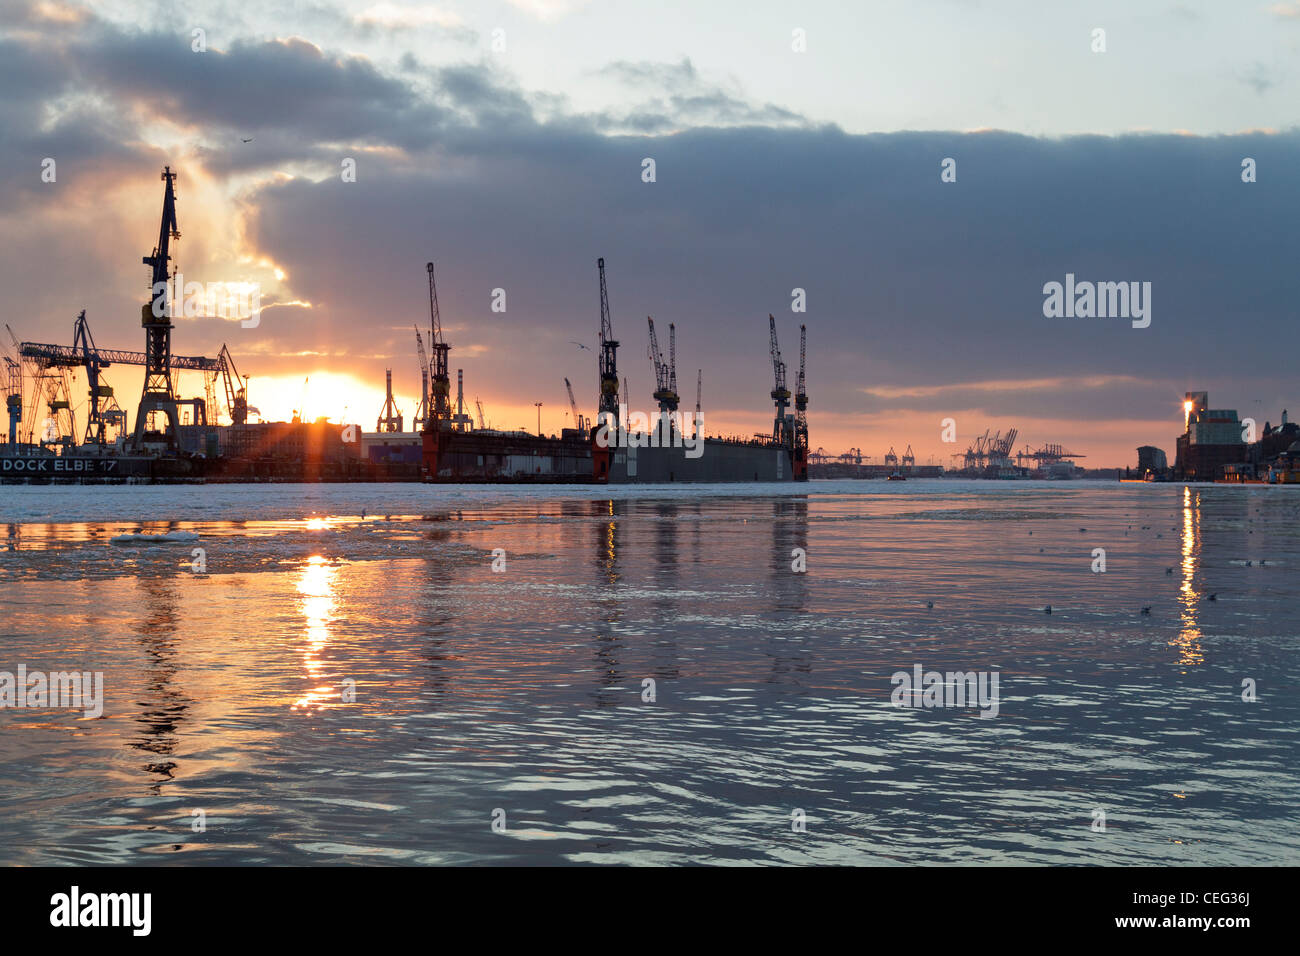 Looking West over the Elbe River in Hamburg as the sunsets - Stock Image